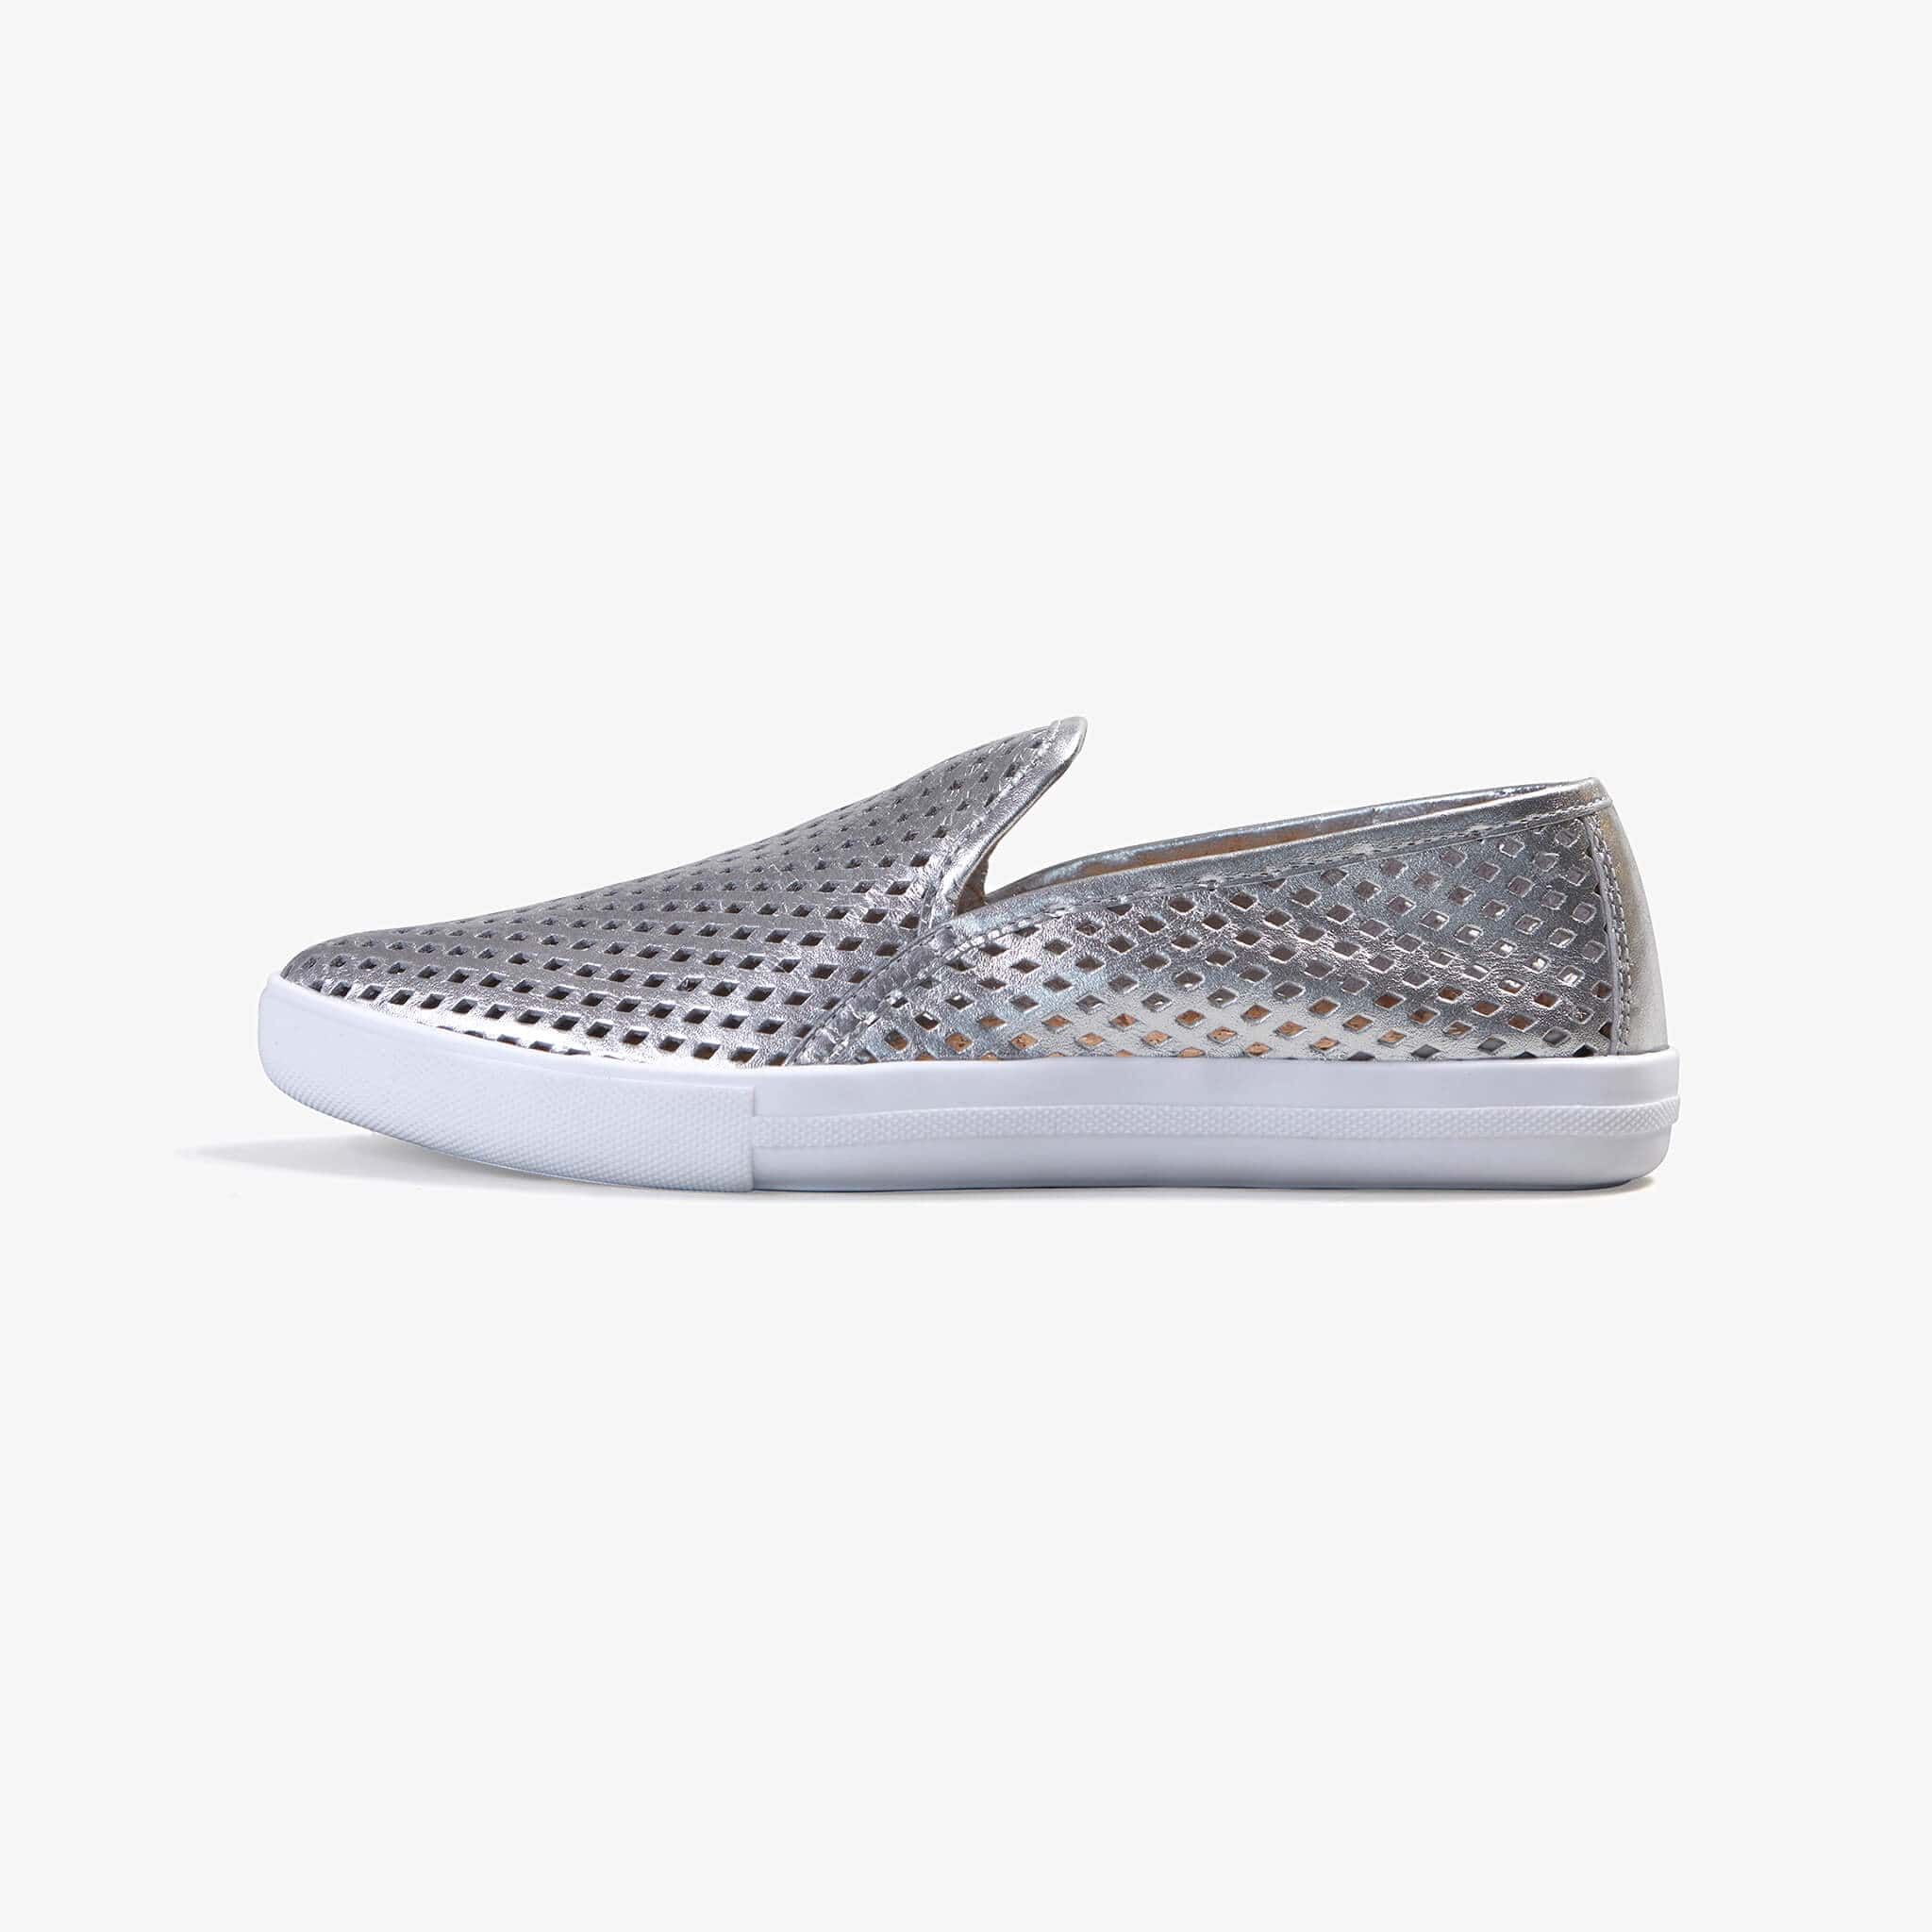 Jibs Slim Silver Slip On Sneaker Flat Shoe Side